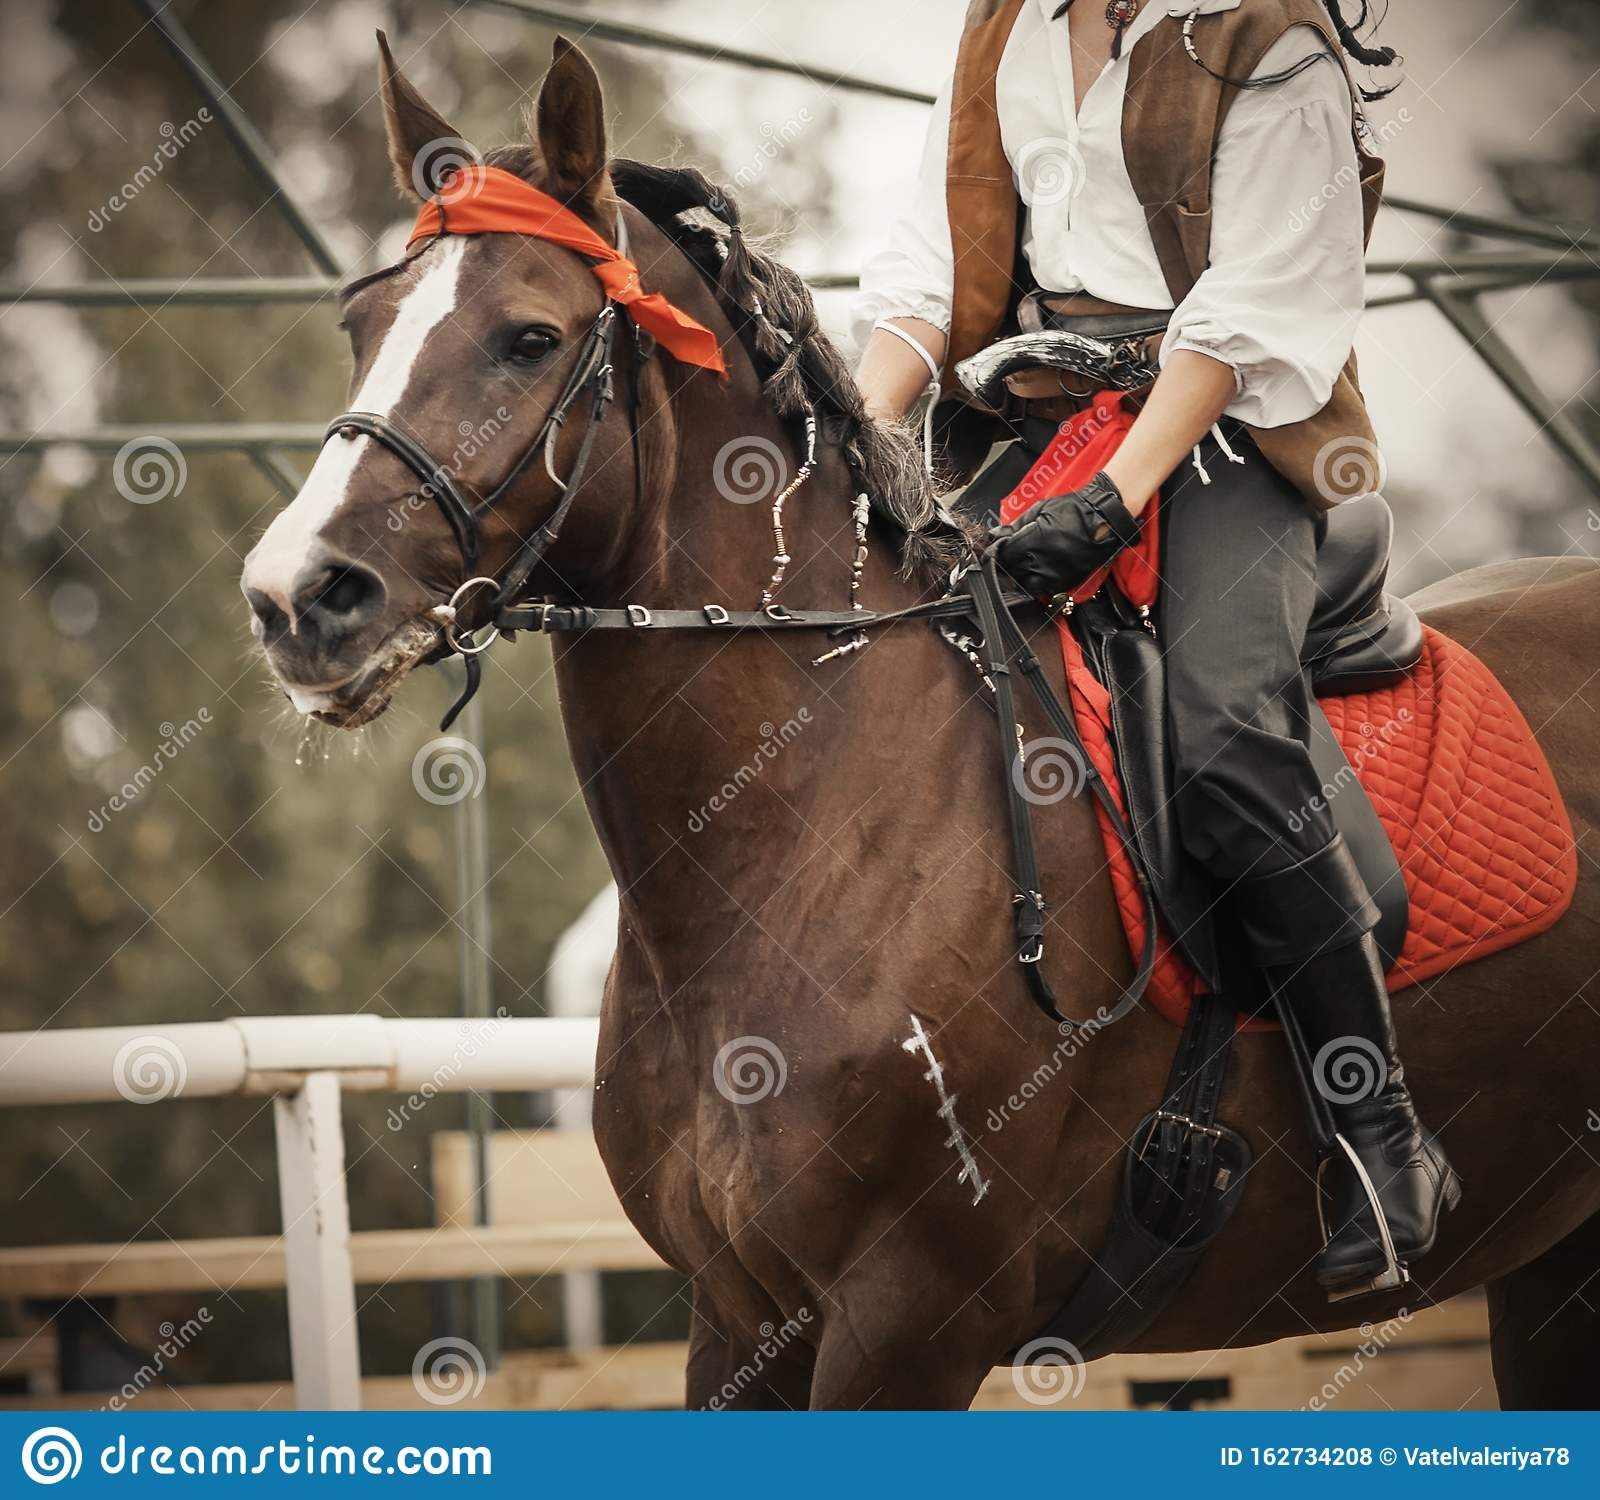 A Bay Horse Gallops With A Rider In The Saddle Who Is Dressed In Pirate Costume Stock Photo Image Of Competition Head 162734208